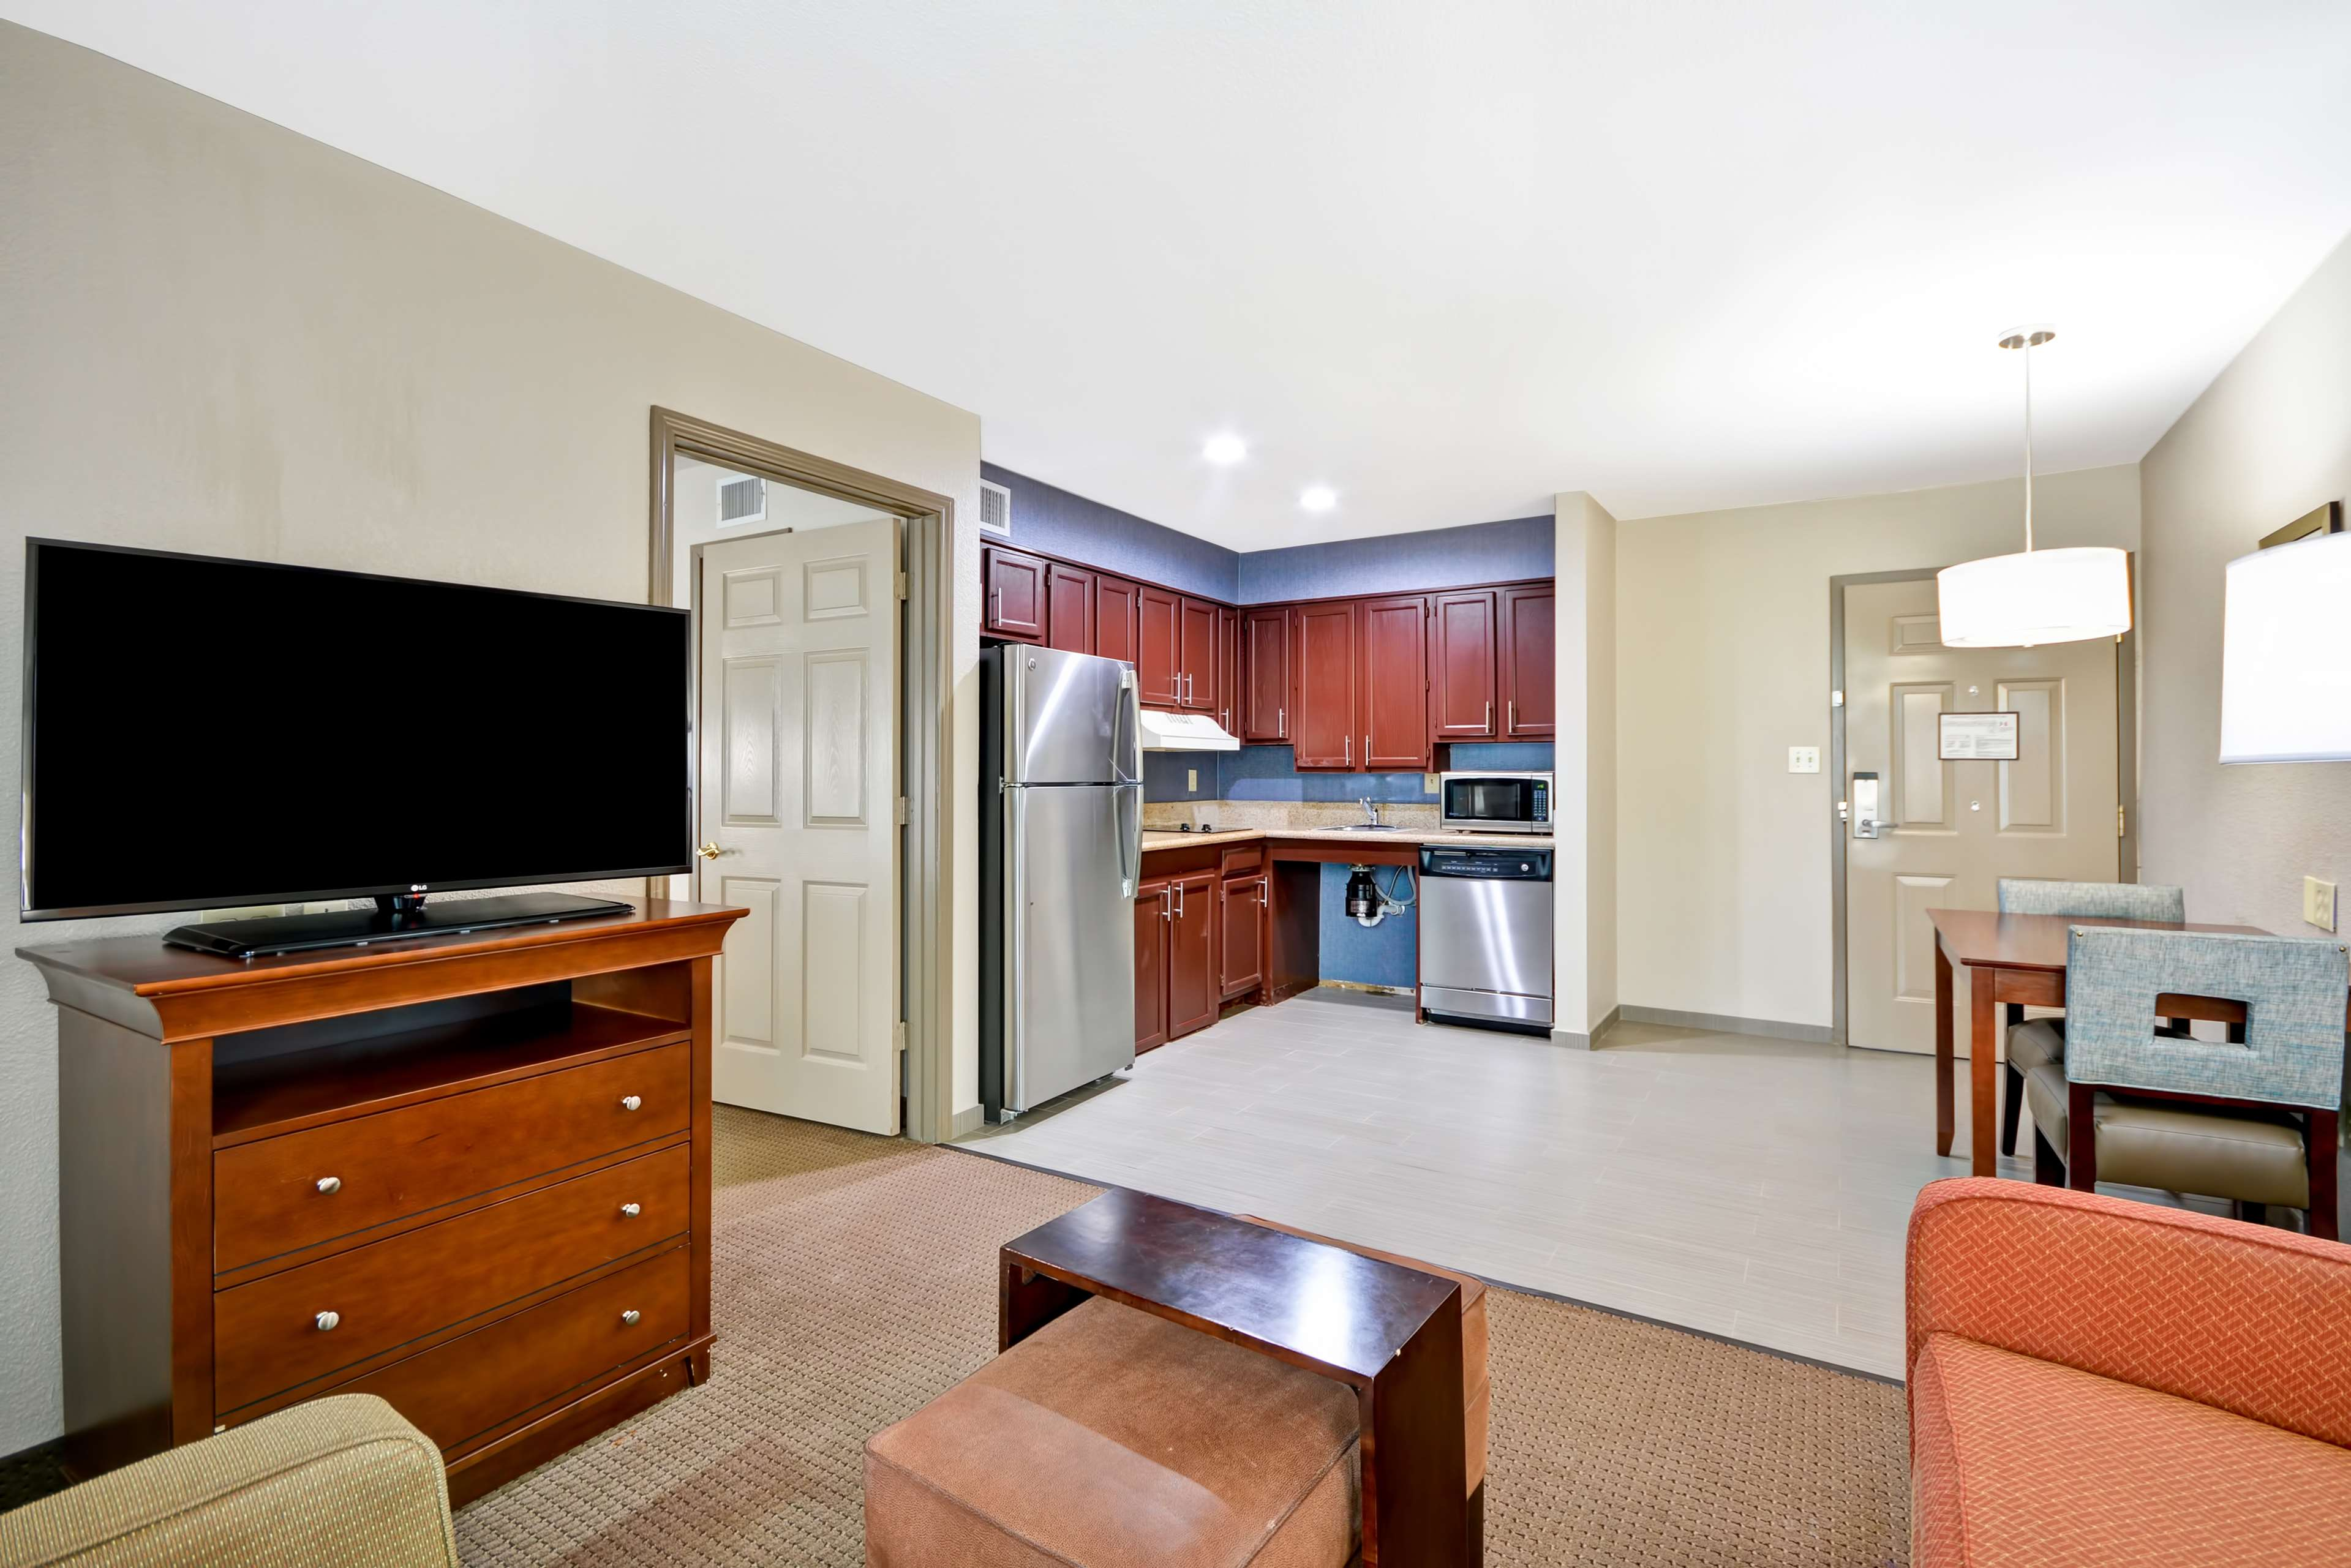 Homewood Suites by Hilton Dallas-Lewisville image 32